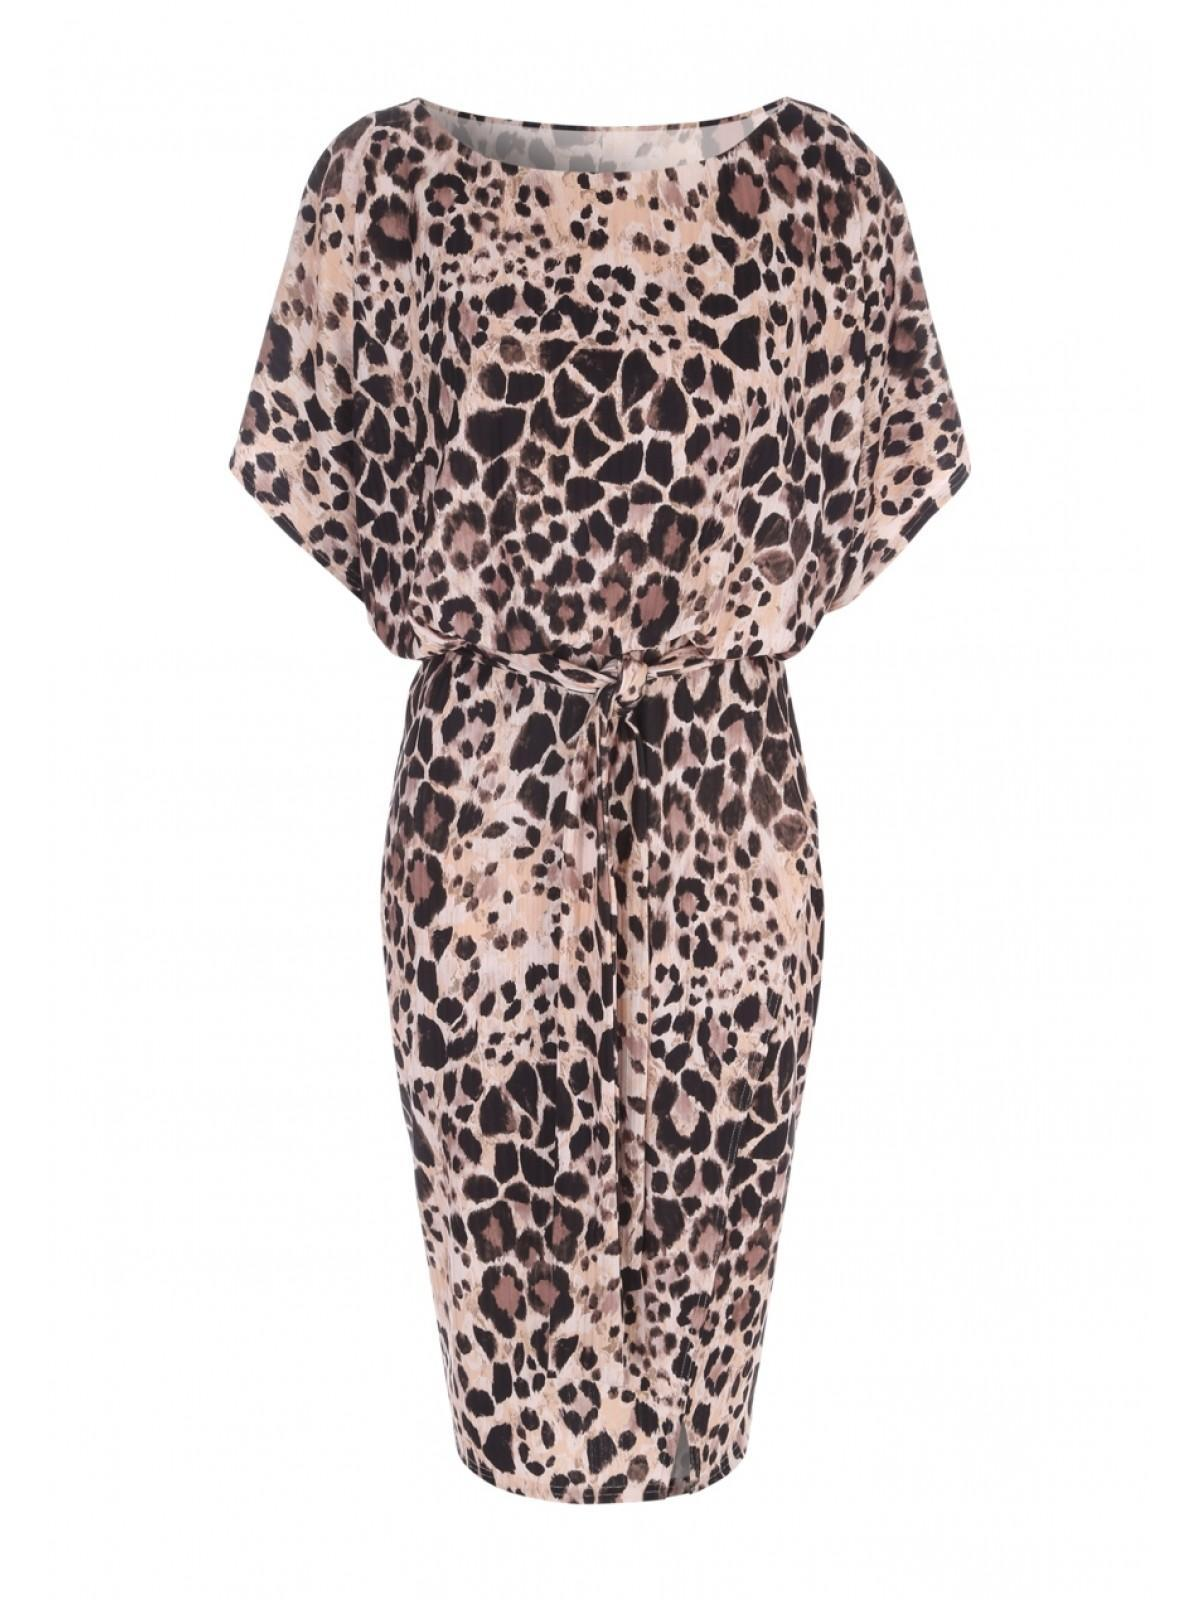 b978cf51f400 Home; Womens Envy Leopard Print Belted Dress. Back. PreviousNext